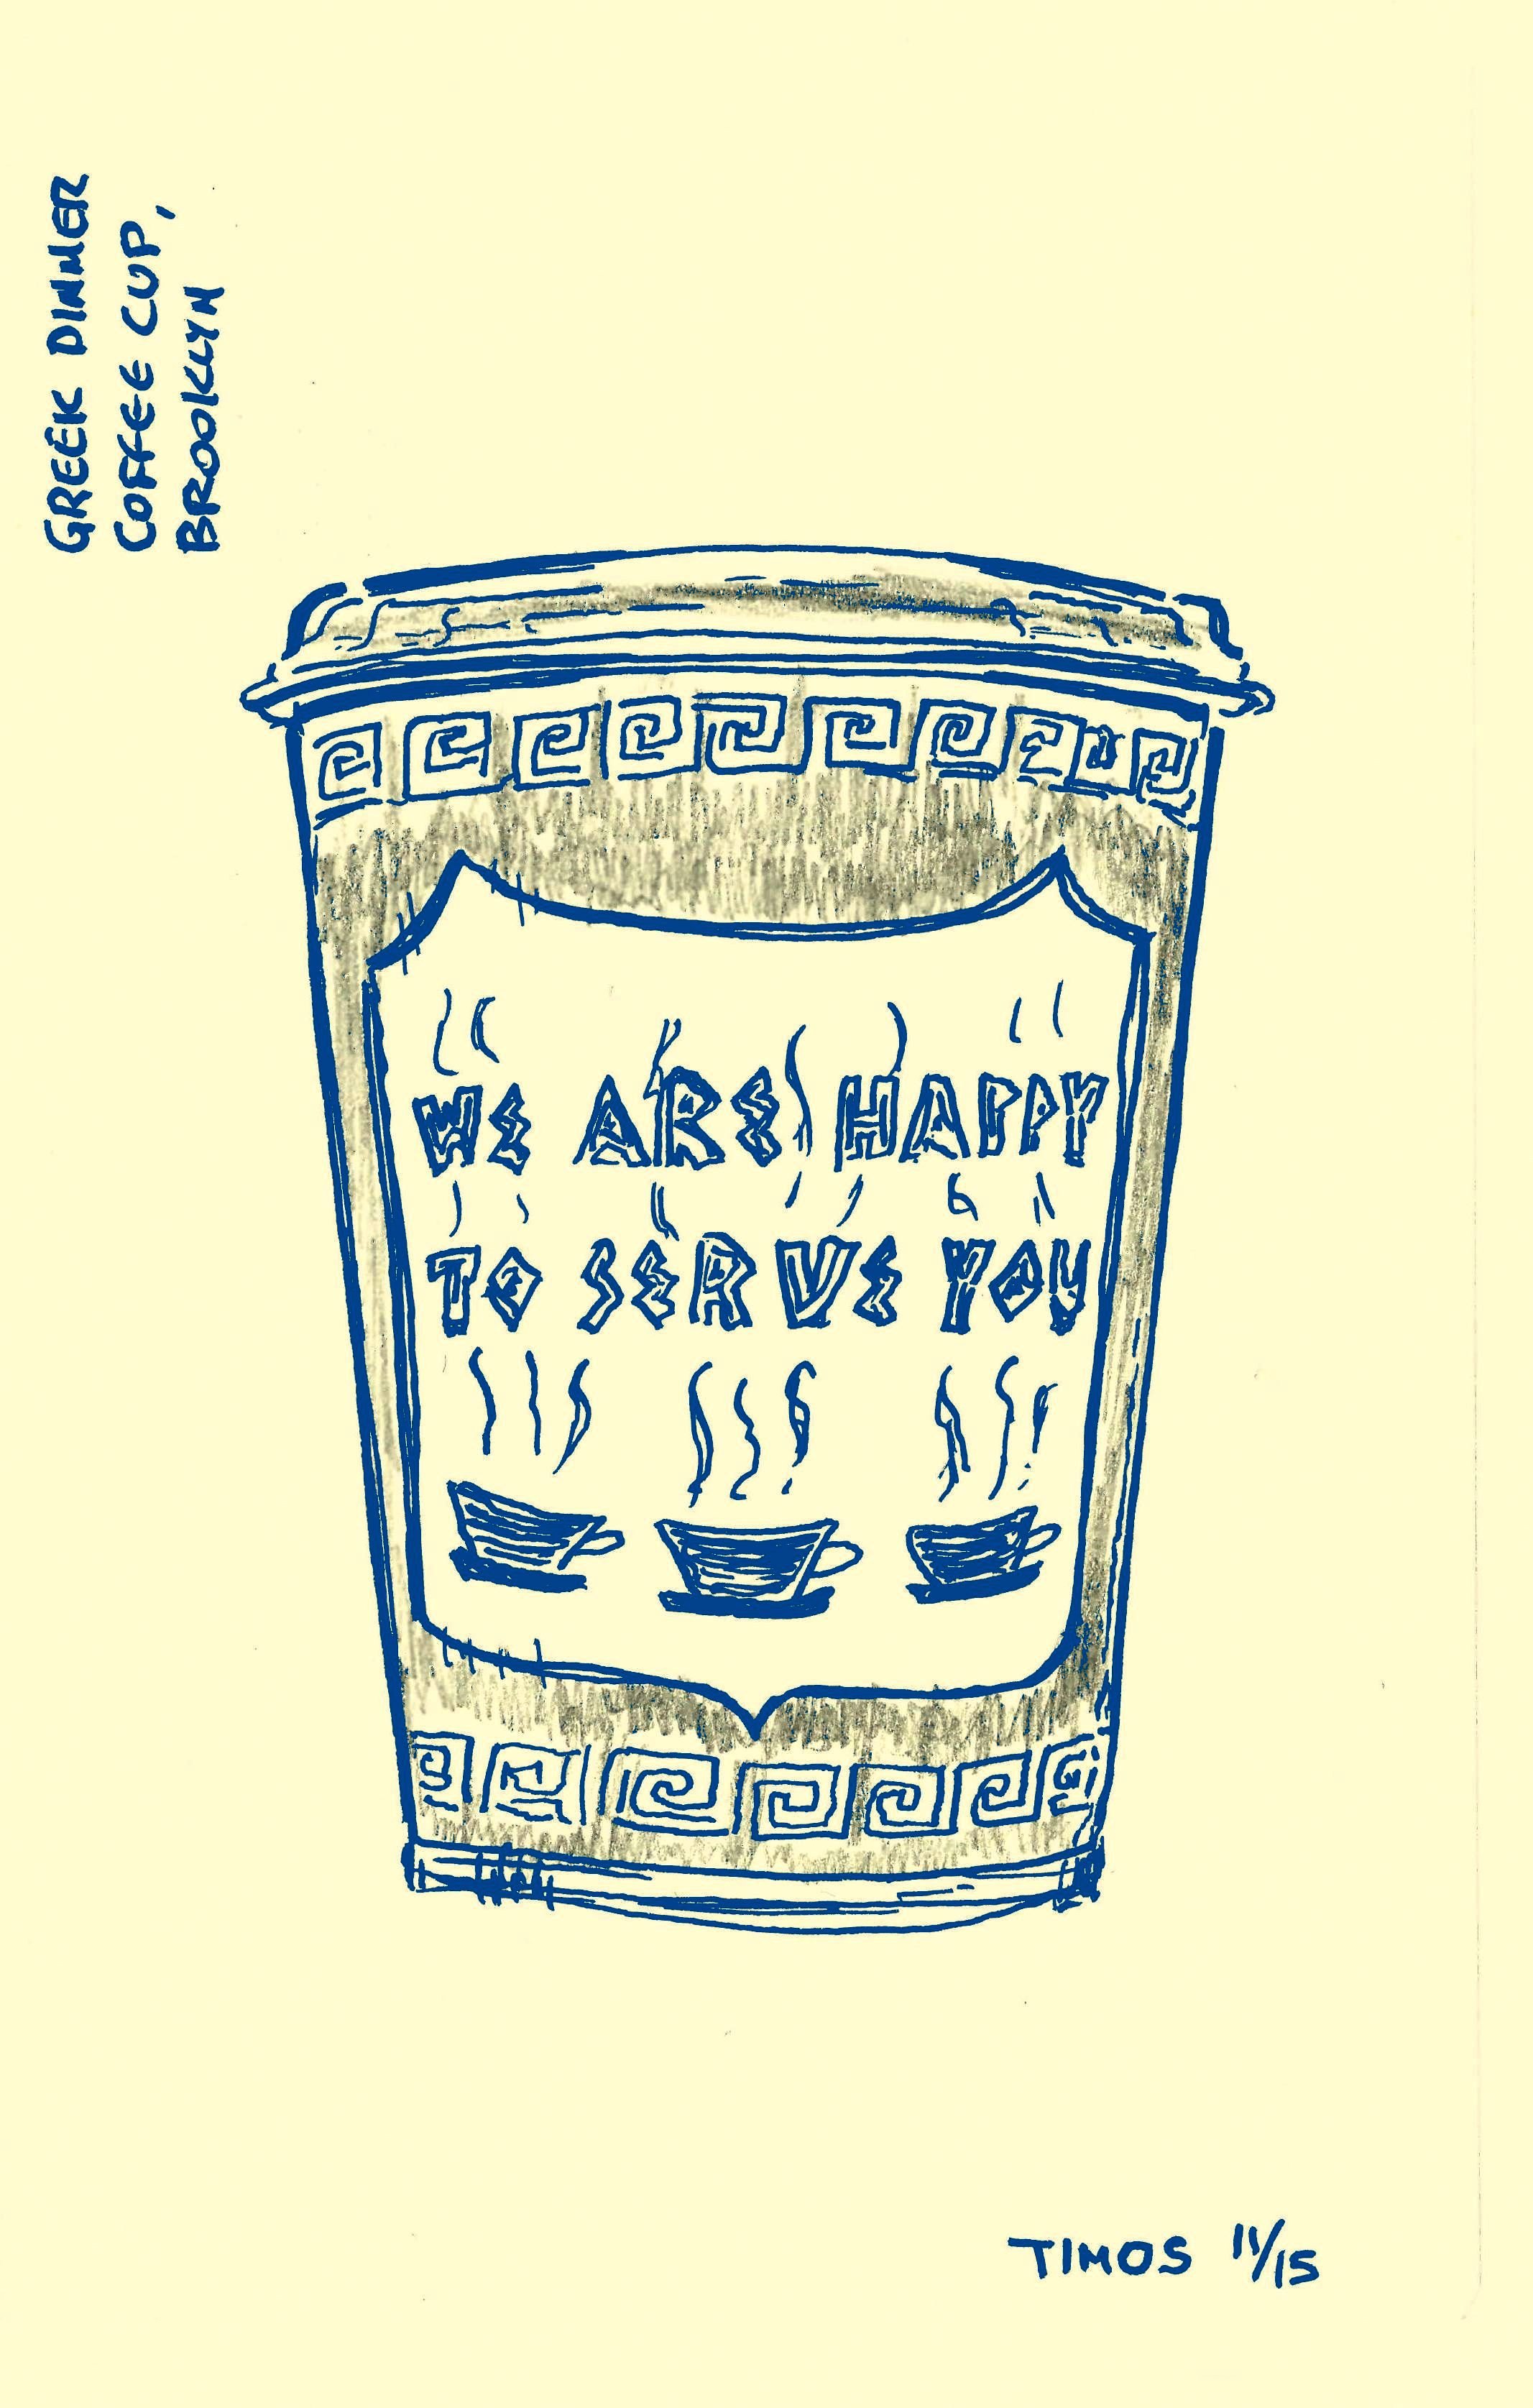 Greek diner coffee cup